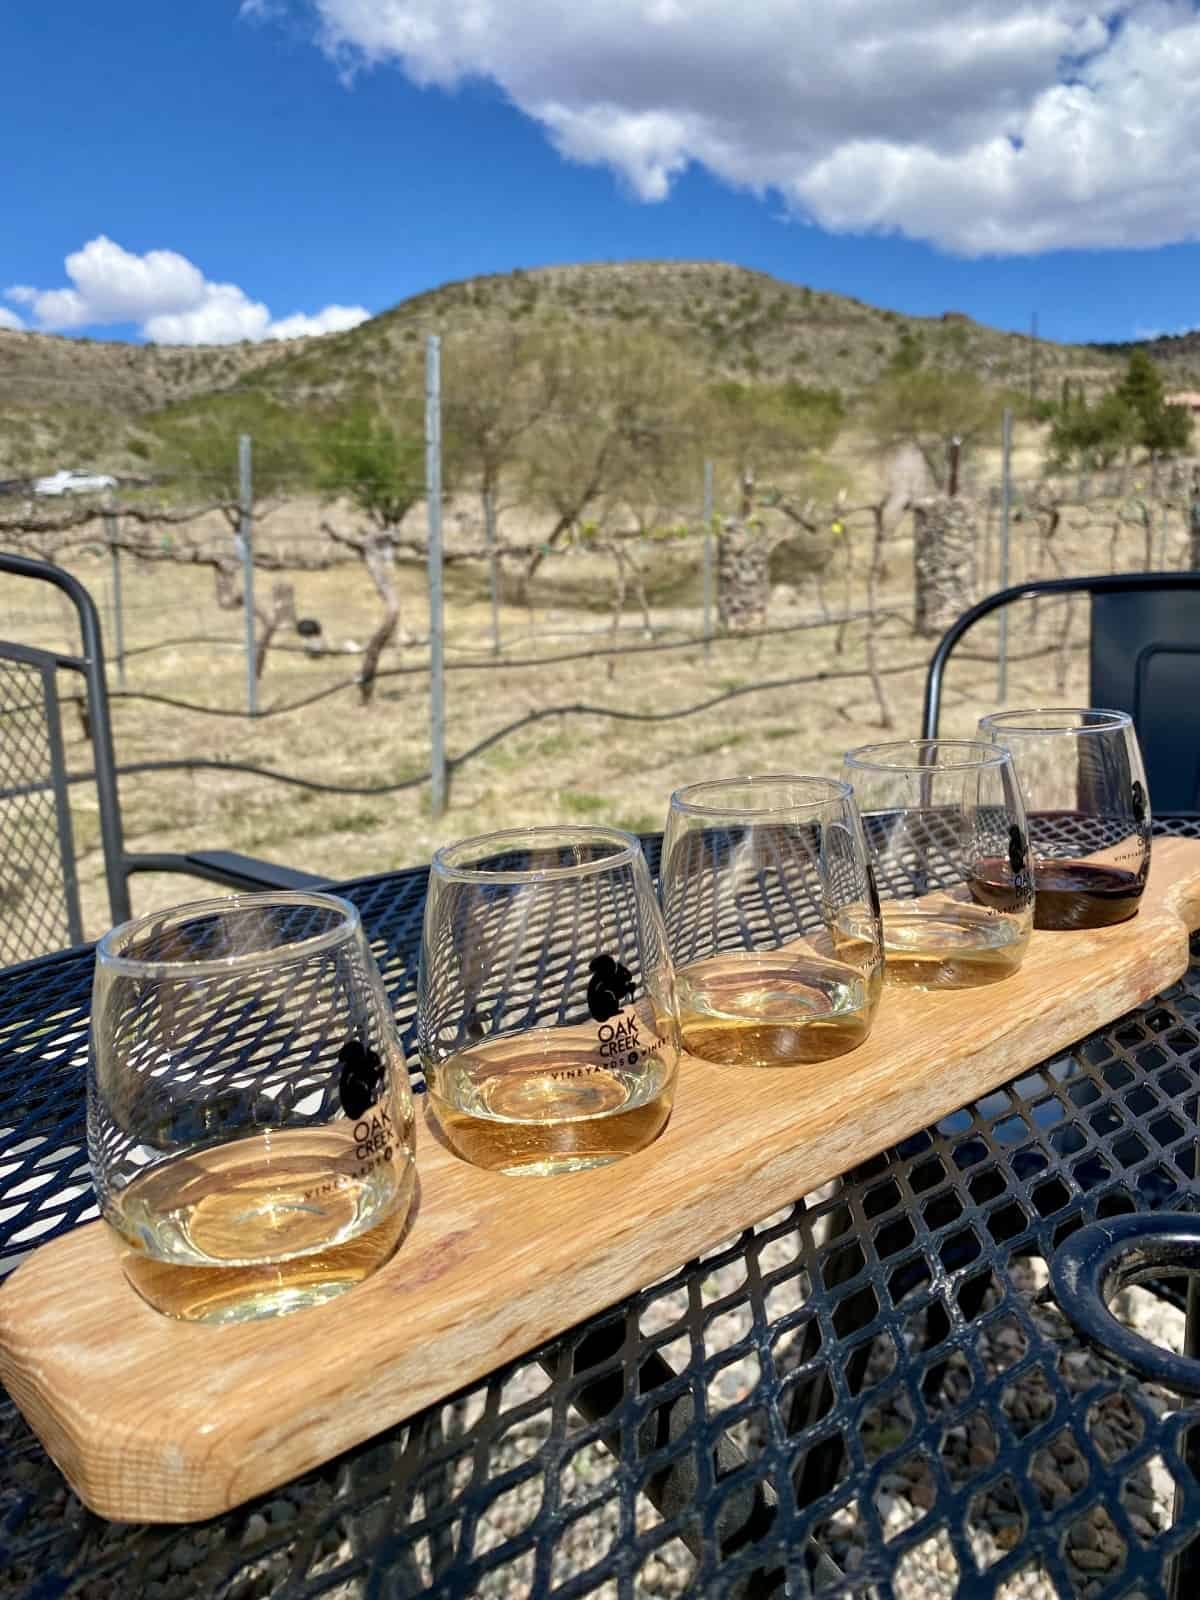 The views and cheese plate at Oak Creek Vineyards are great! - Sedona wineries to visit